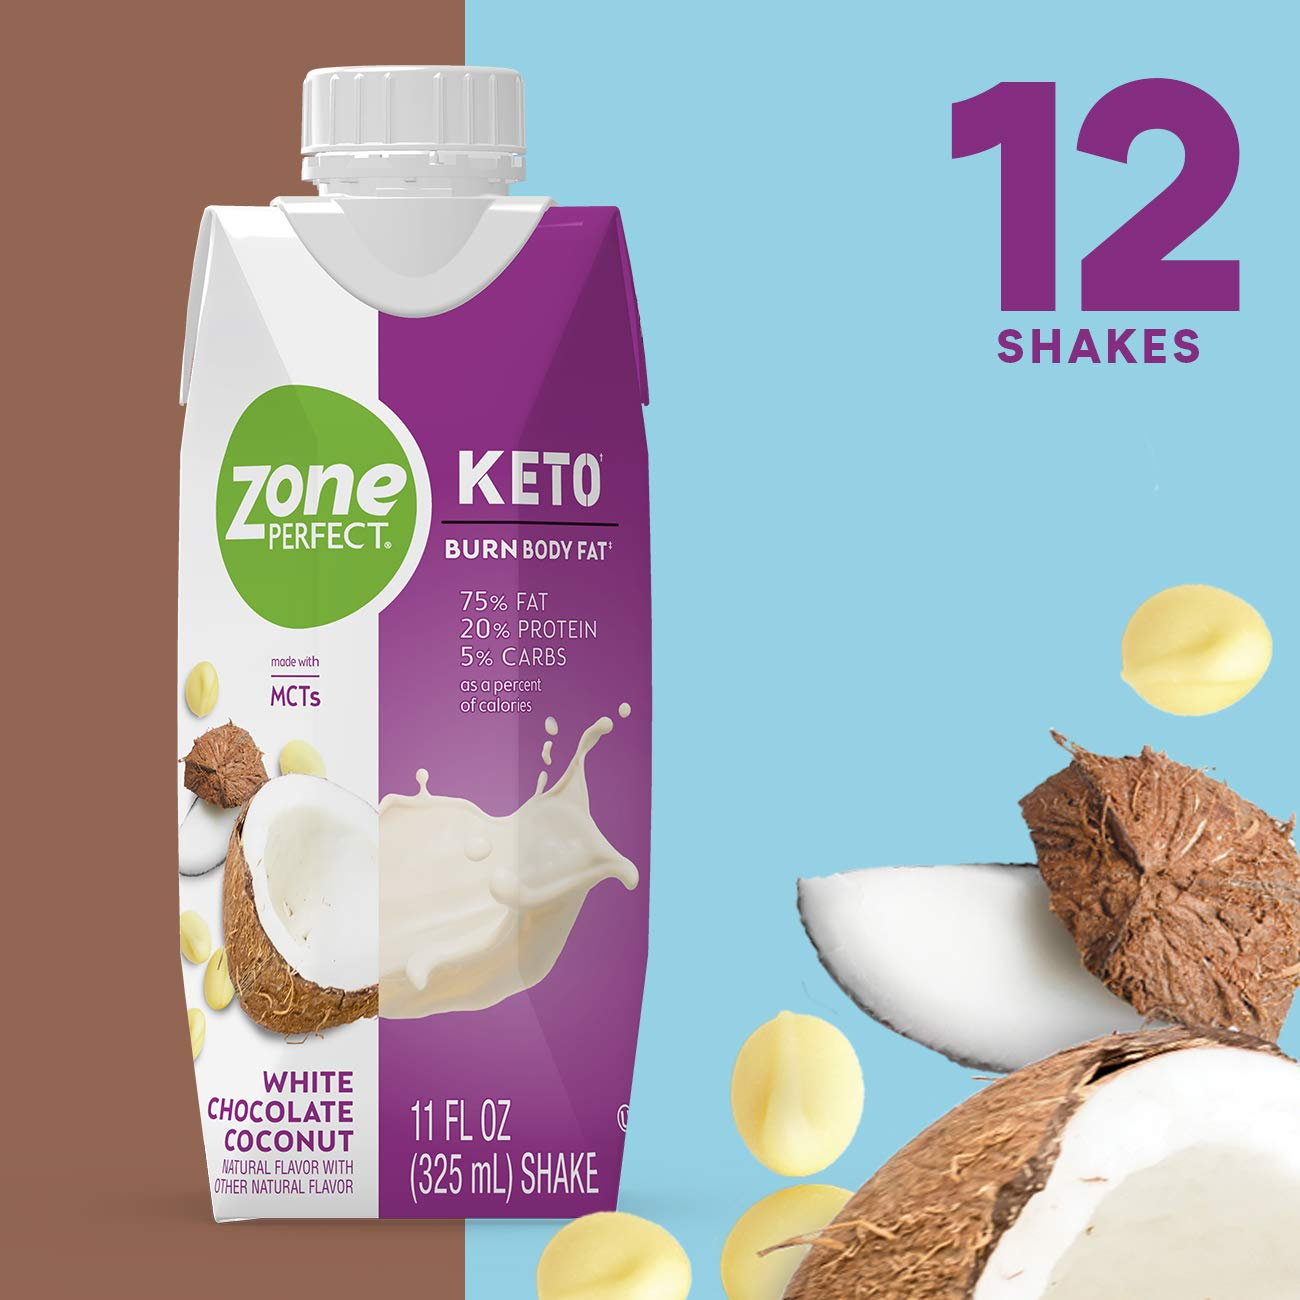 ZonePerfect Keto Shake, White Chocolate Coconut Flavor, True Keto Macros, Made With MCTs, 11 fl oz, 12Count by ZonePerfect KETO